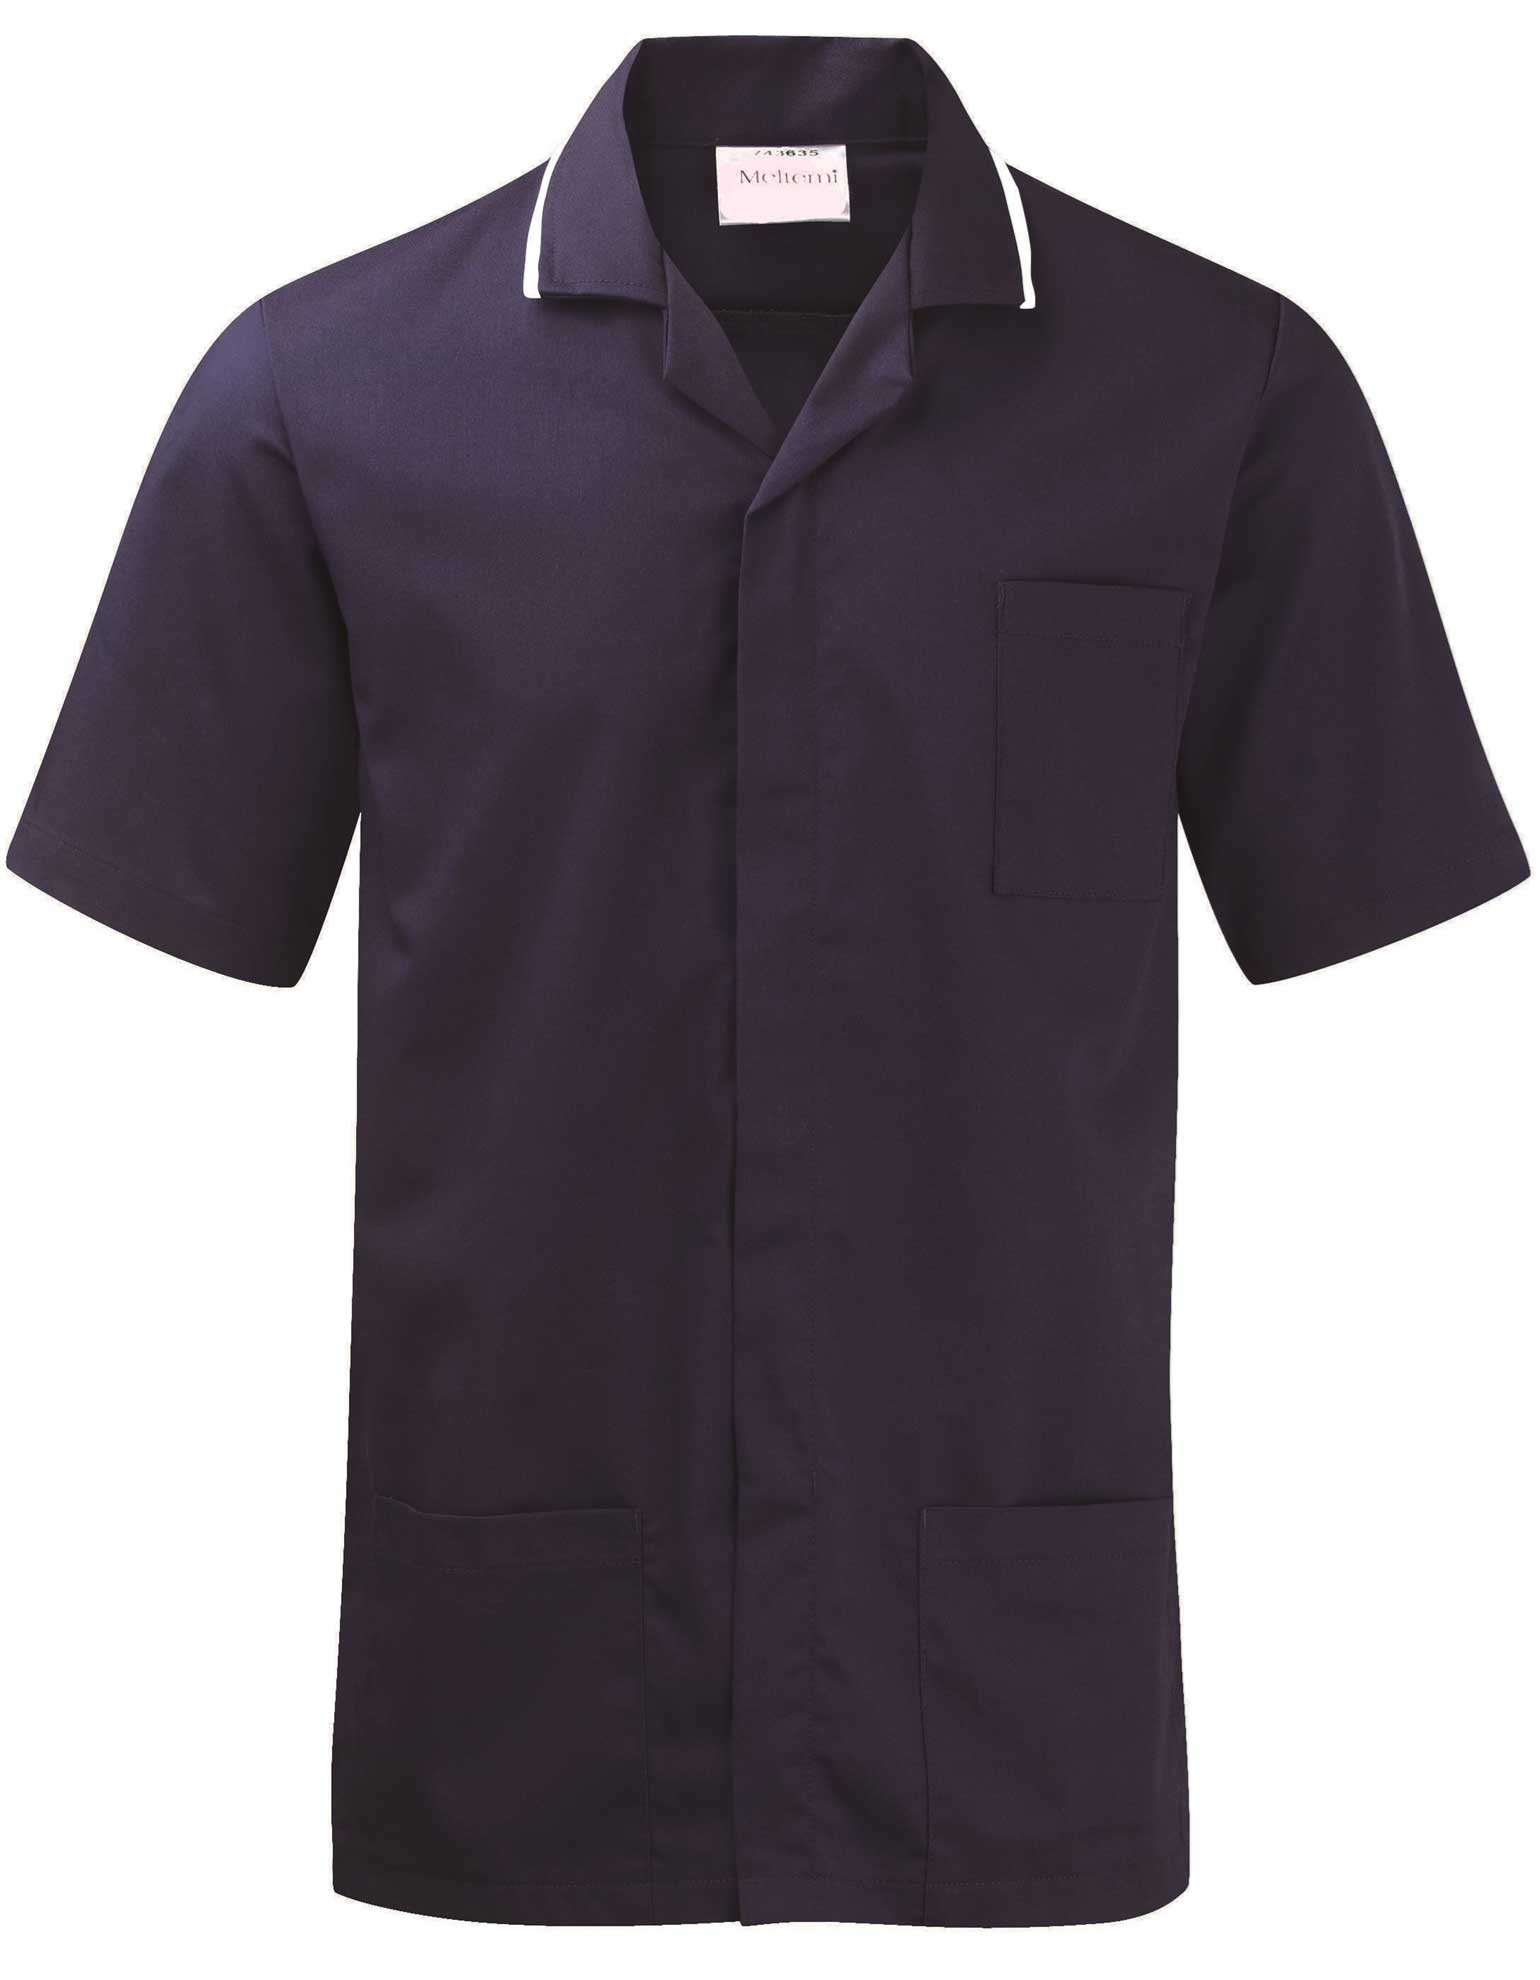 Picture of Advantage Front Fastening Tunic - Navy/White